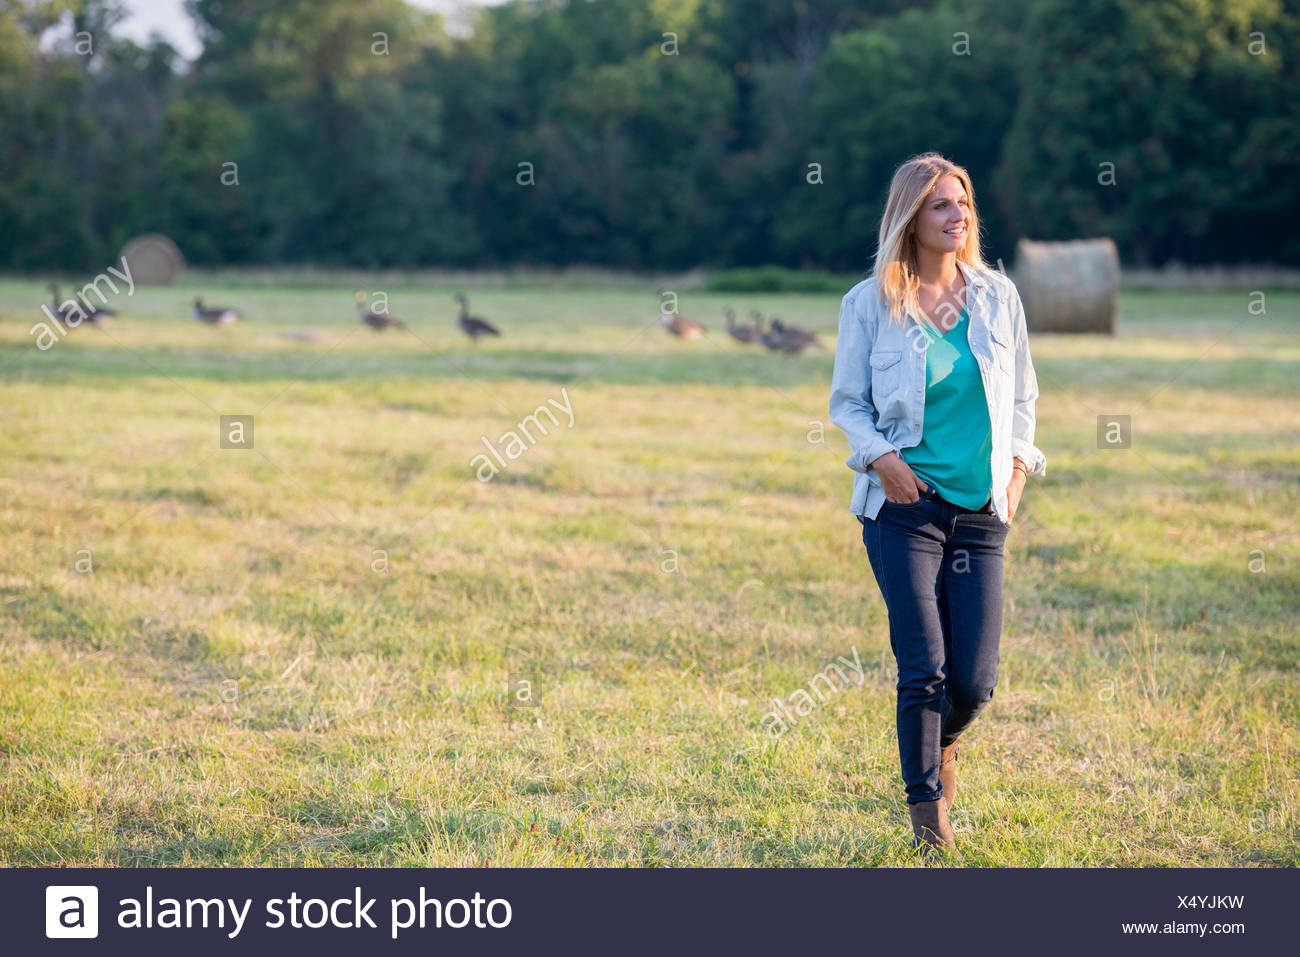 A woman walking across a field, away from a flock of geese outdoors in the fresh air. - Stock Image